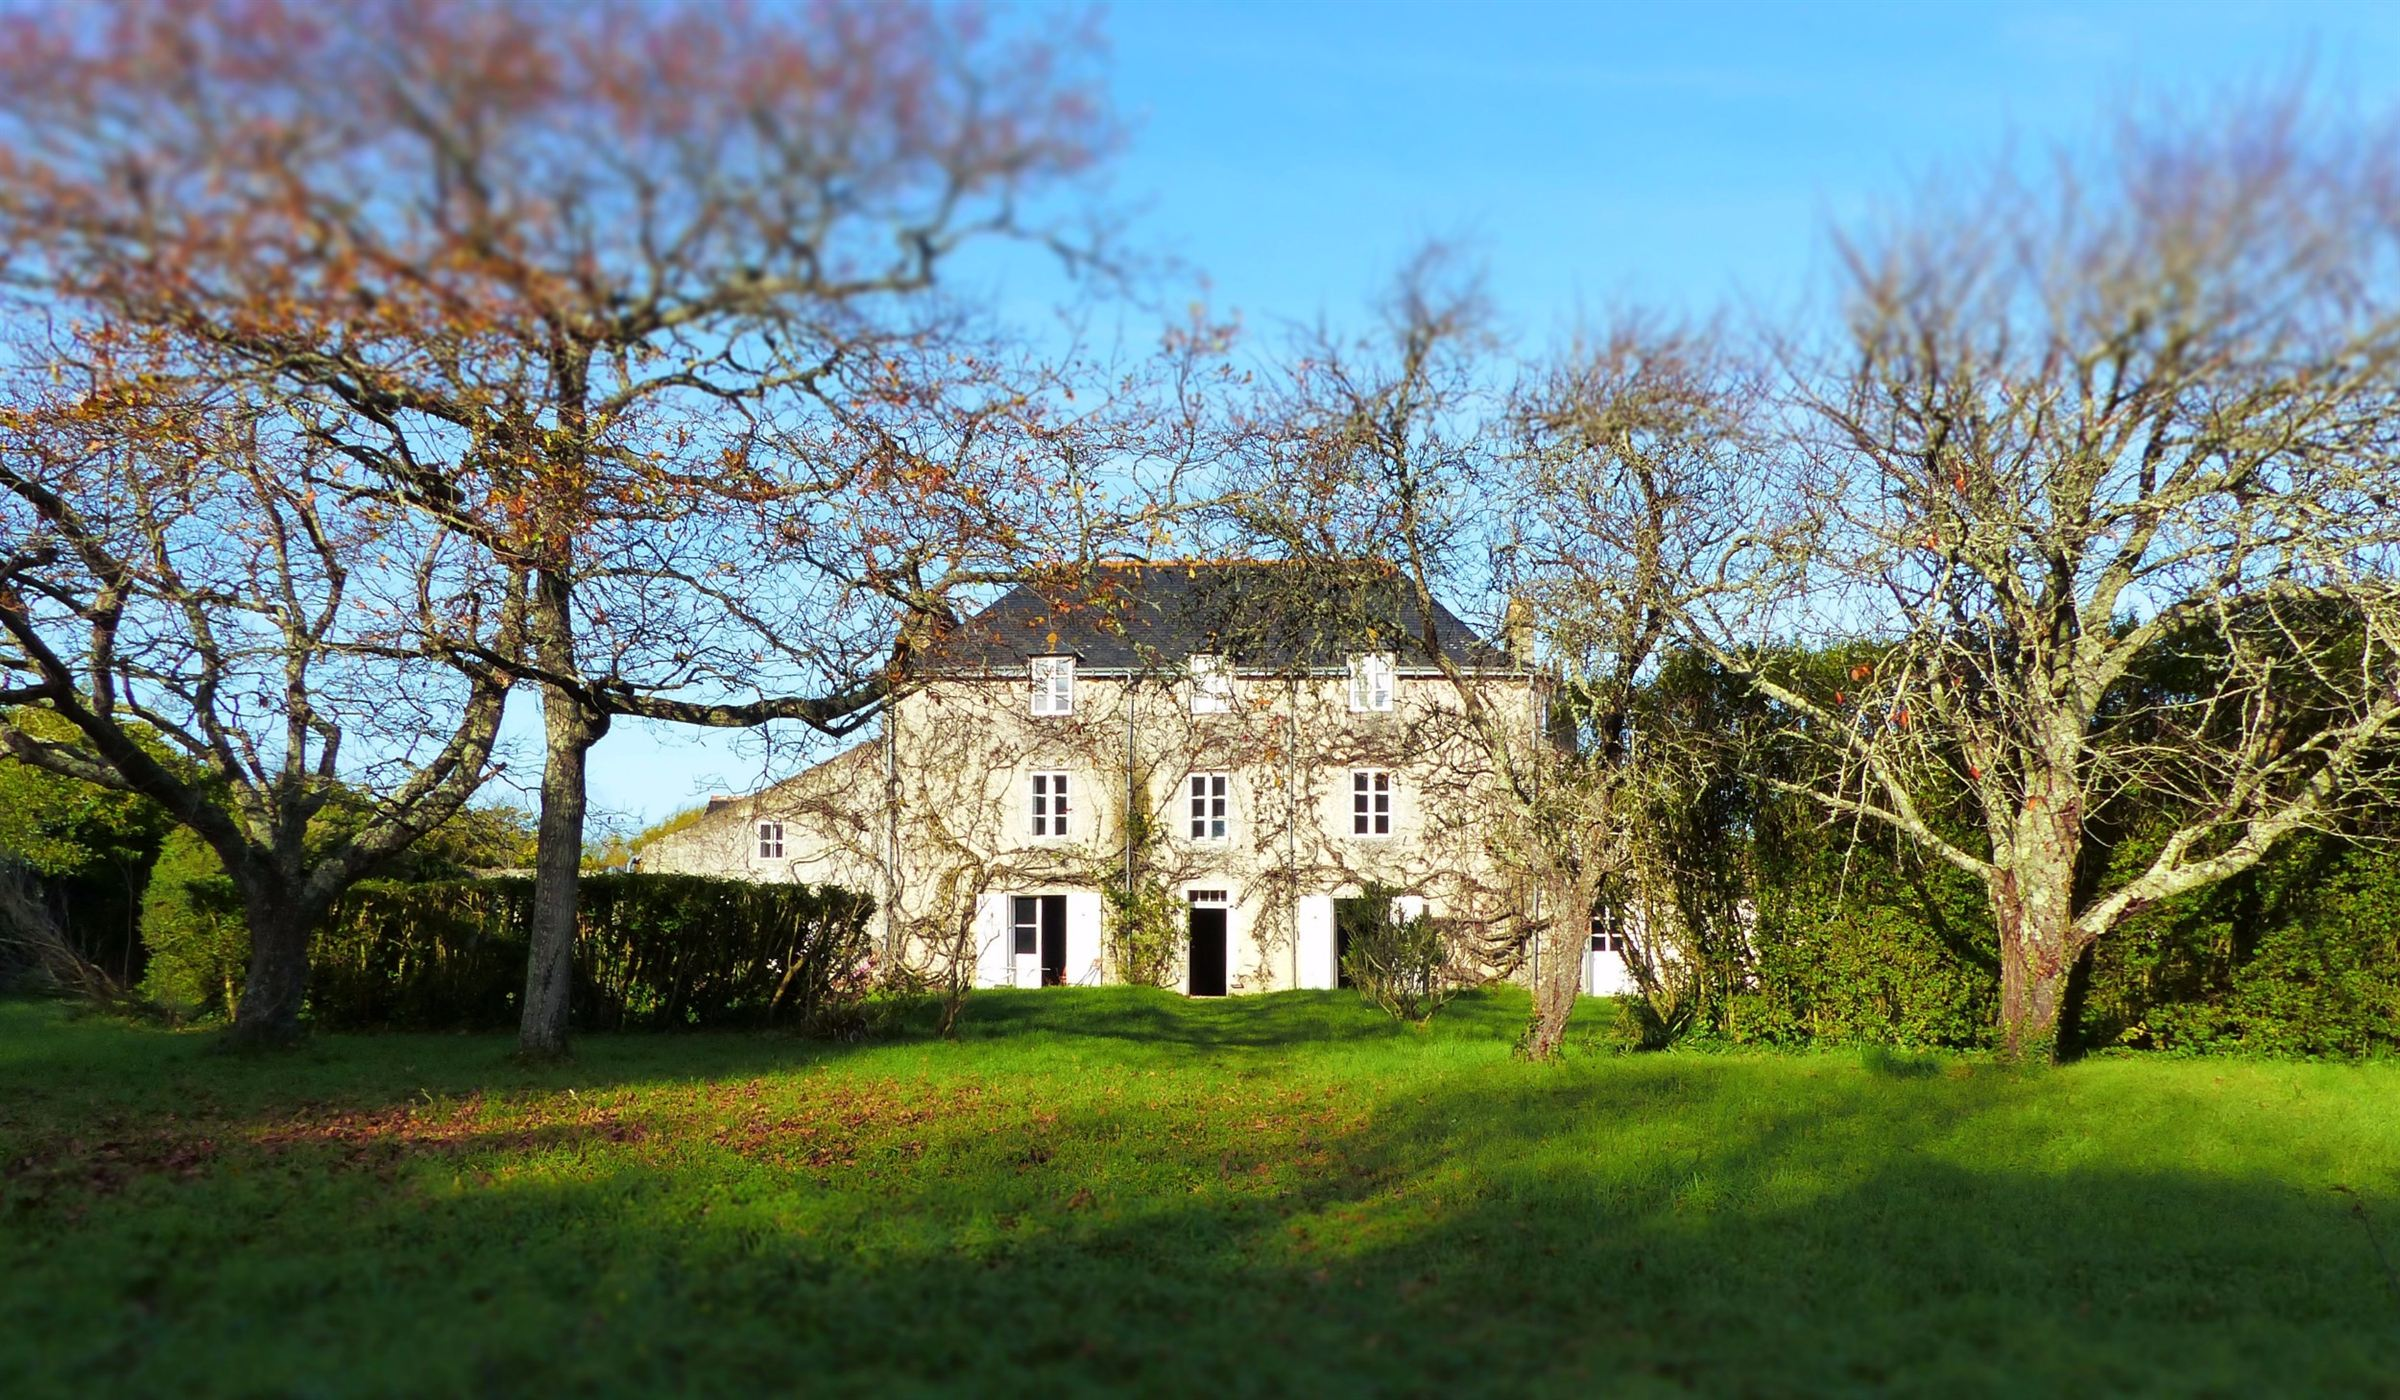 Property For Sale at Belle-Ile, Sauzon, Historical property at 5 minutes from port and beaches...